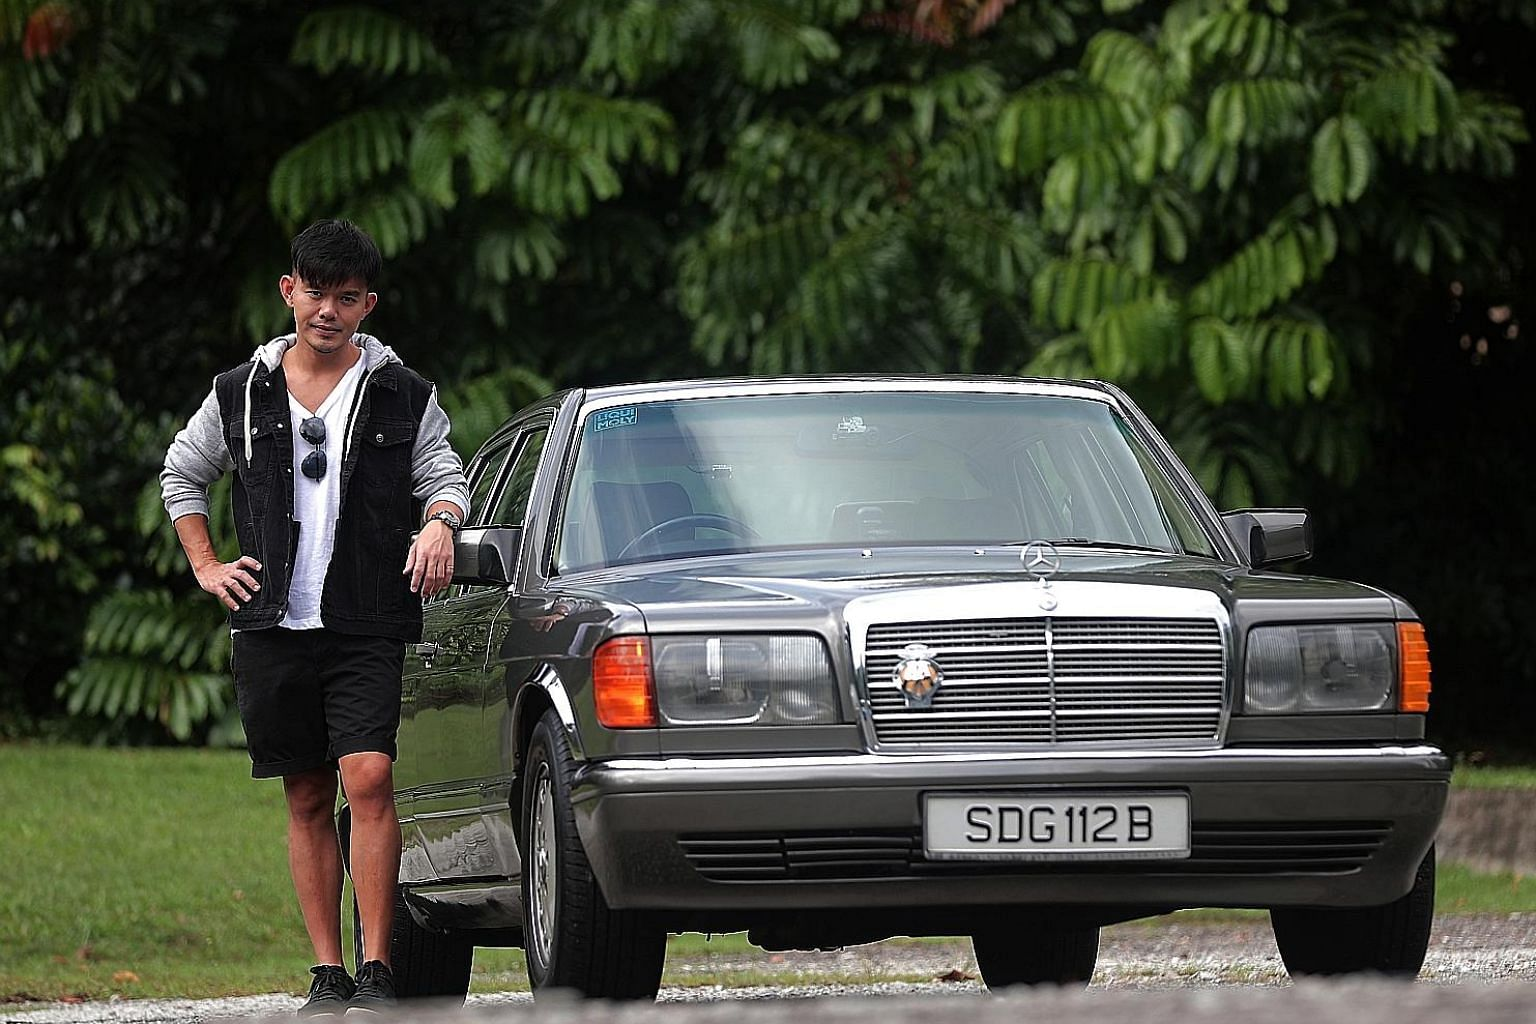 Mr Bernard Teo chanced upon the Mercedes-Benz 300 SEL at a used-car dealership and paid about $25,000 for it.